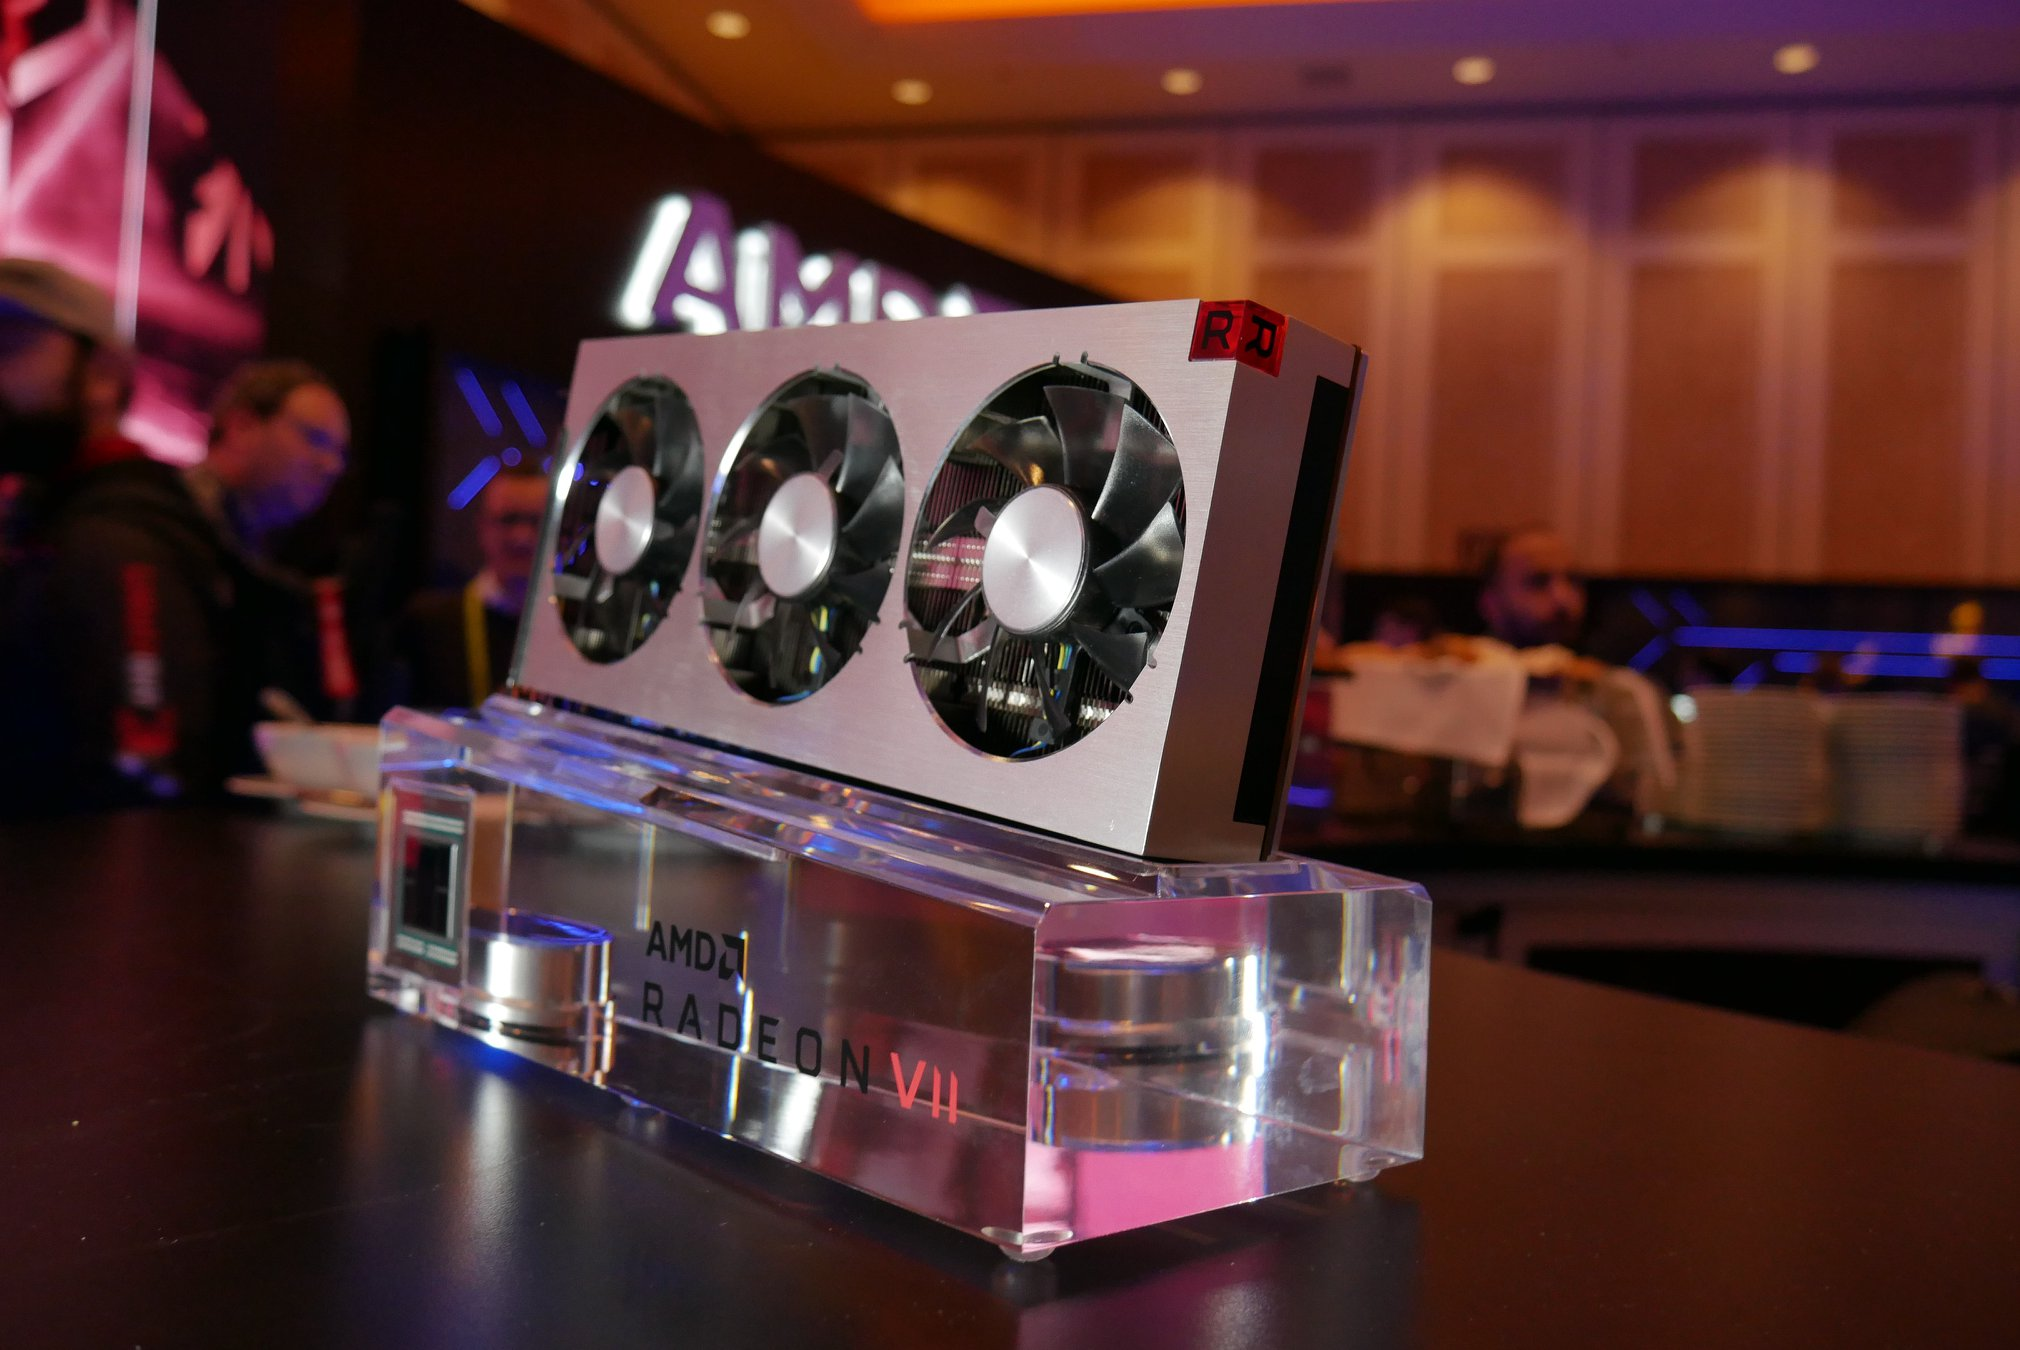 Amd Radeon Vii Worlds First Gaming 7nm Graphics Card Review Roundup